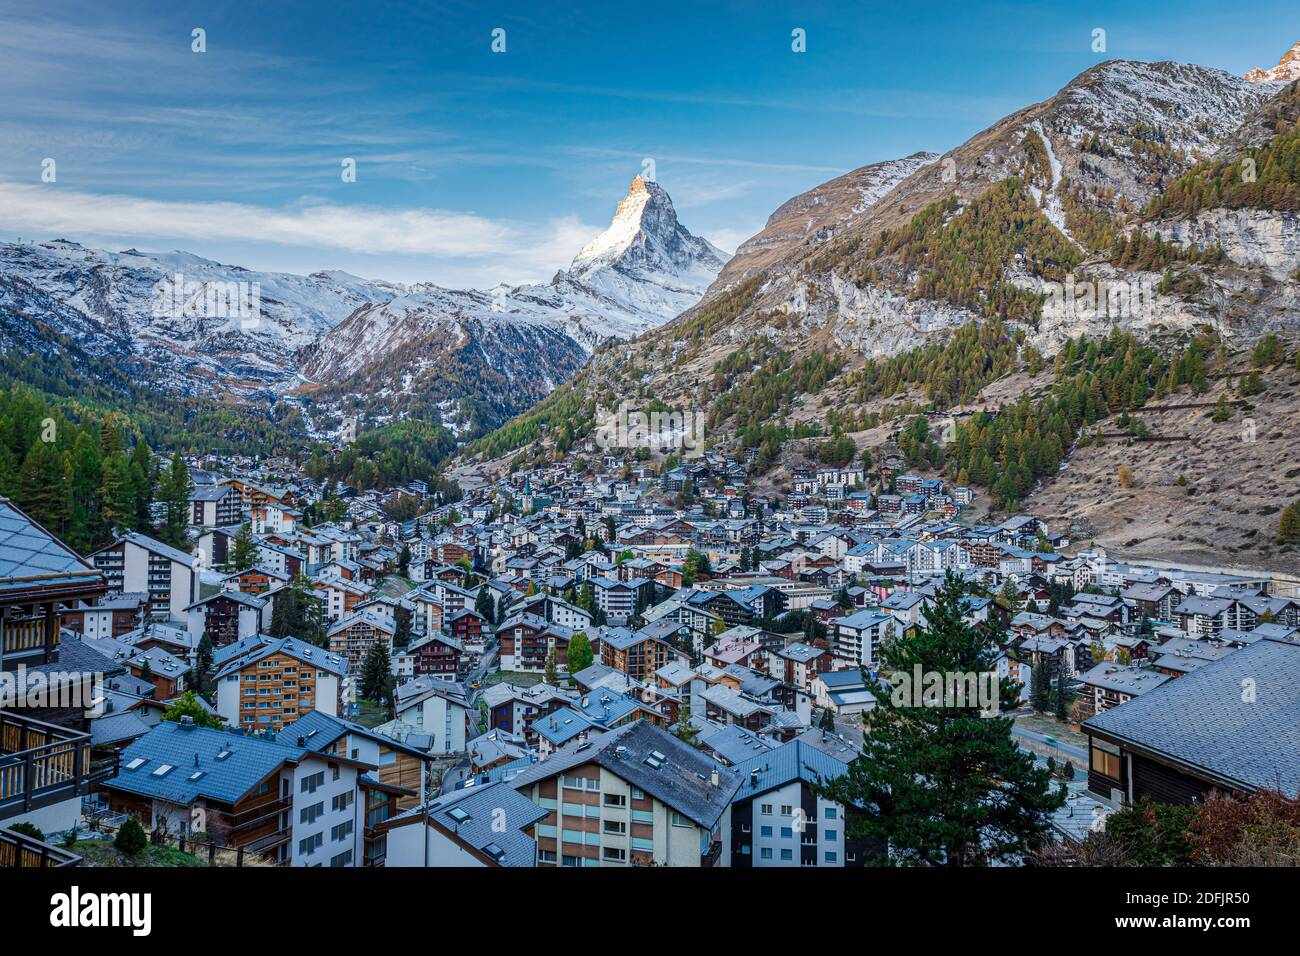 The Swiss village of Zermatt in Valais in autumn at sunrise, with the Matterhorn and the Alpine mountain range in the background. Stock Photo